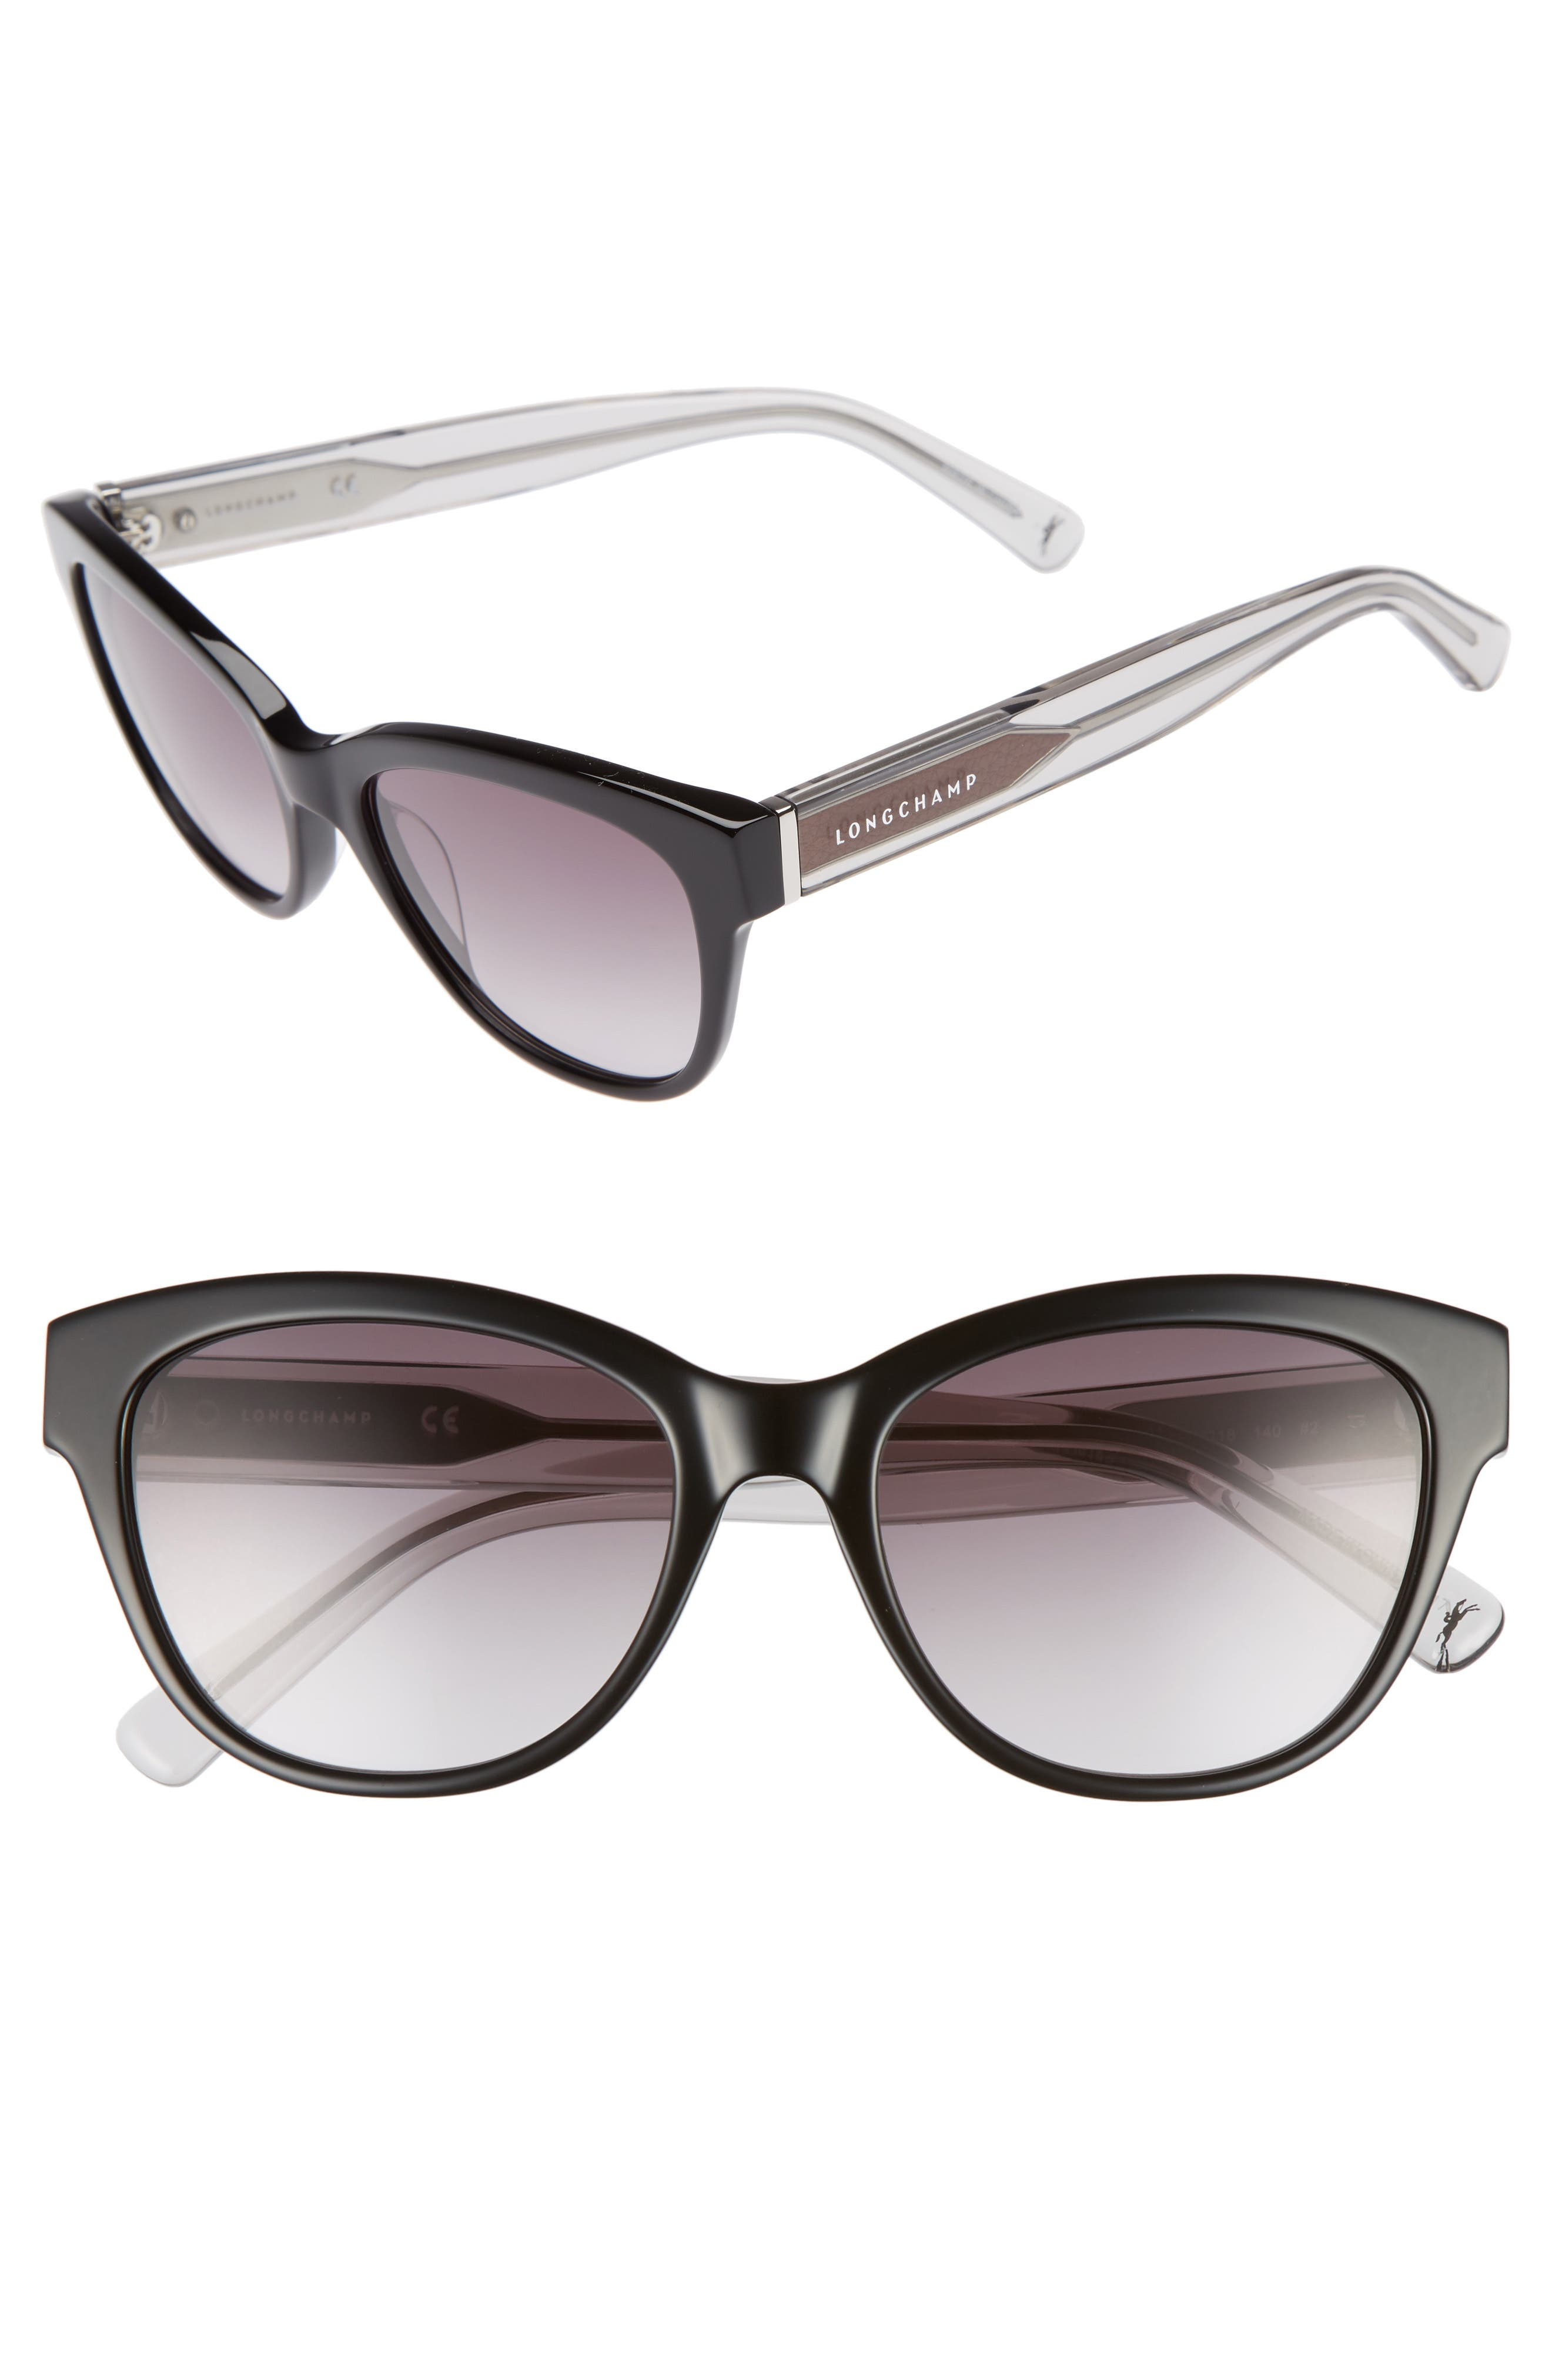 Longchamp 54mm Gradient Lens Sunglasses